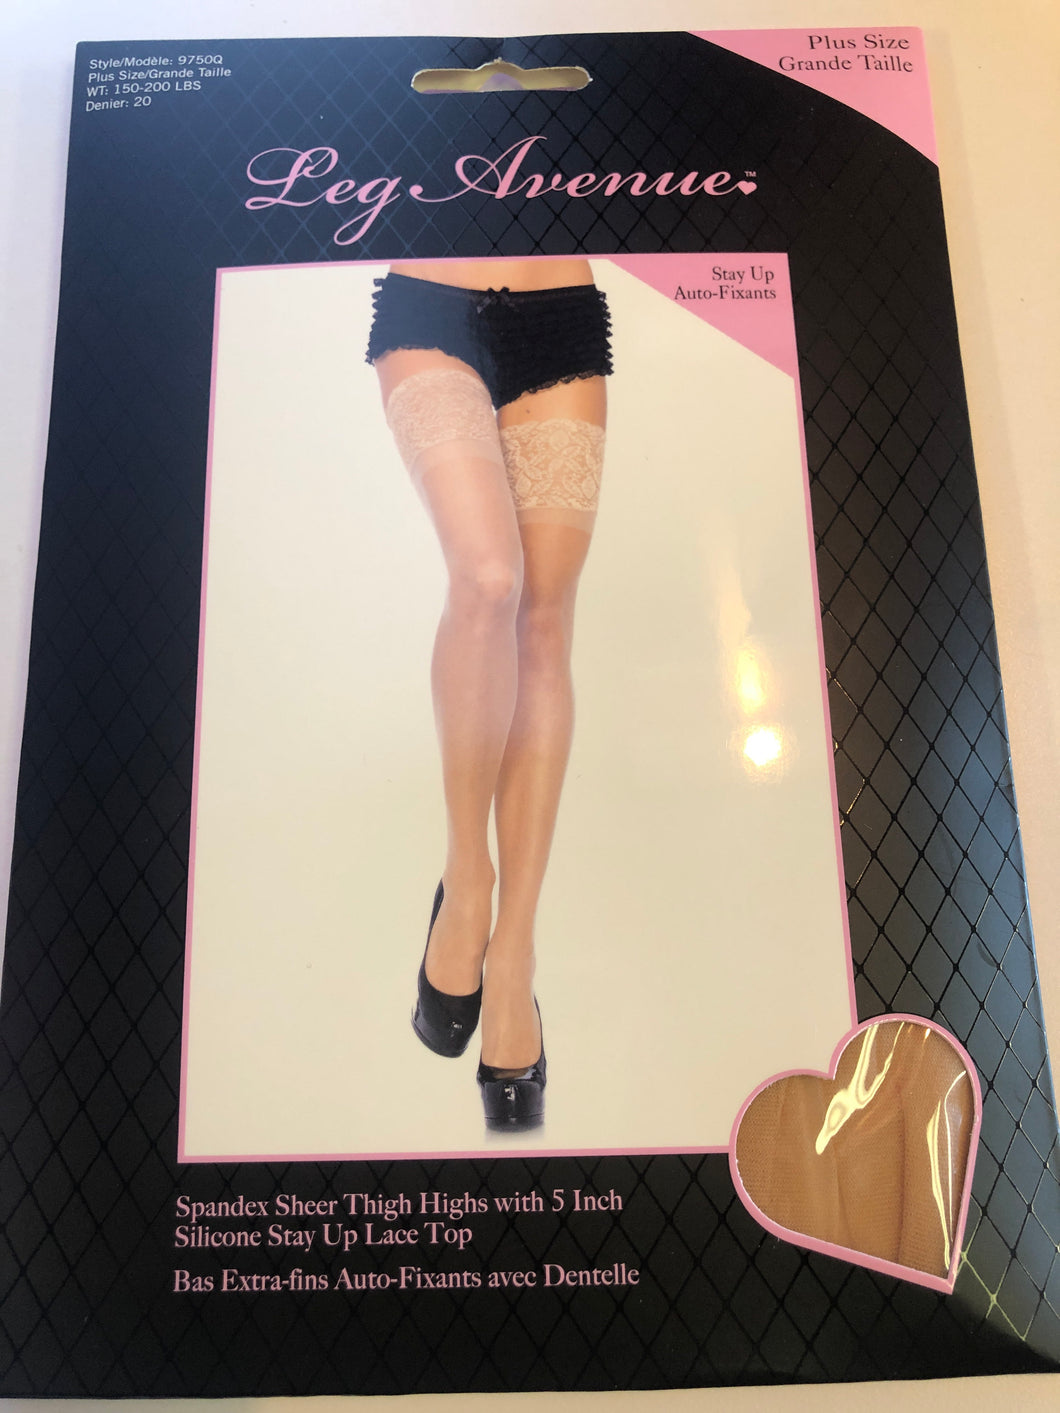 9750Q SPANDEX SHEER THIGH HIGH 5IN SILICONE STAY UP LACE BLACK PLUS